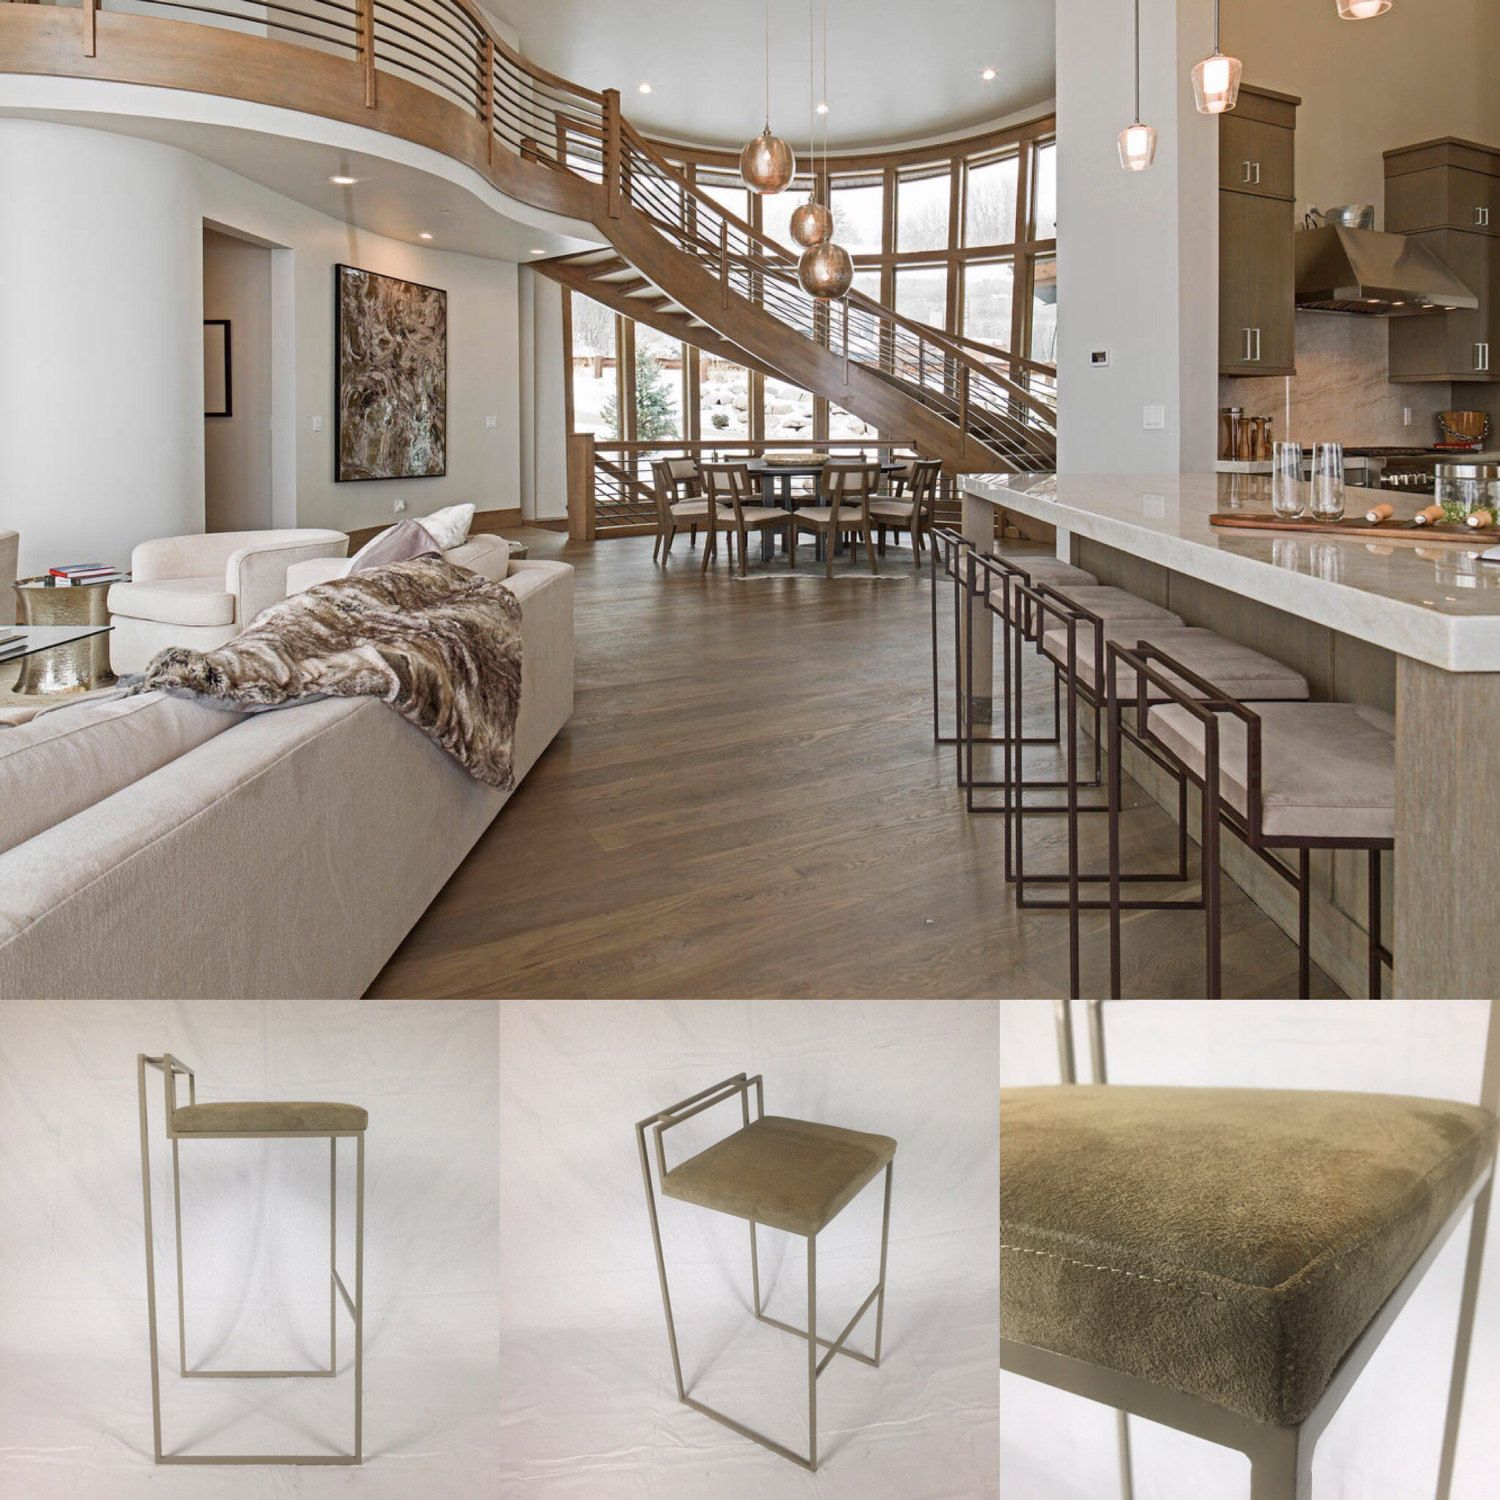 The Square Stool | White leather dining chairs, Round back ...